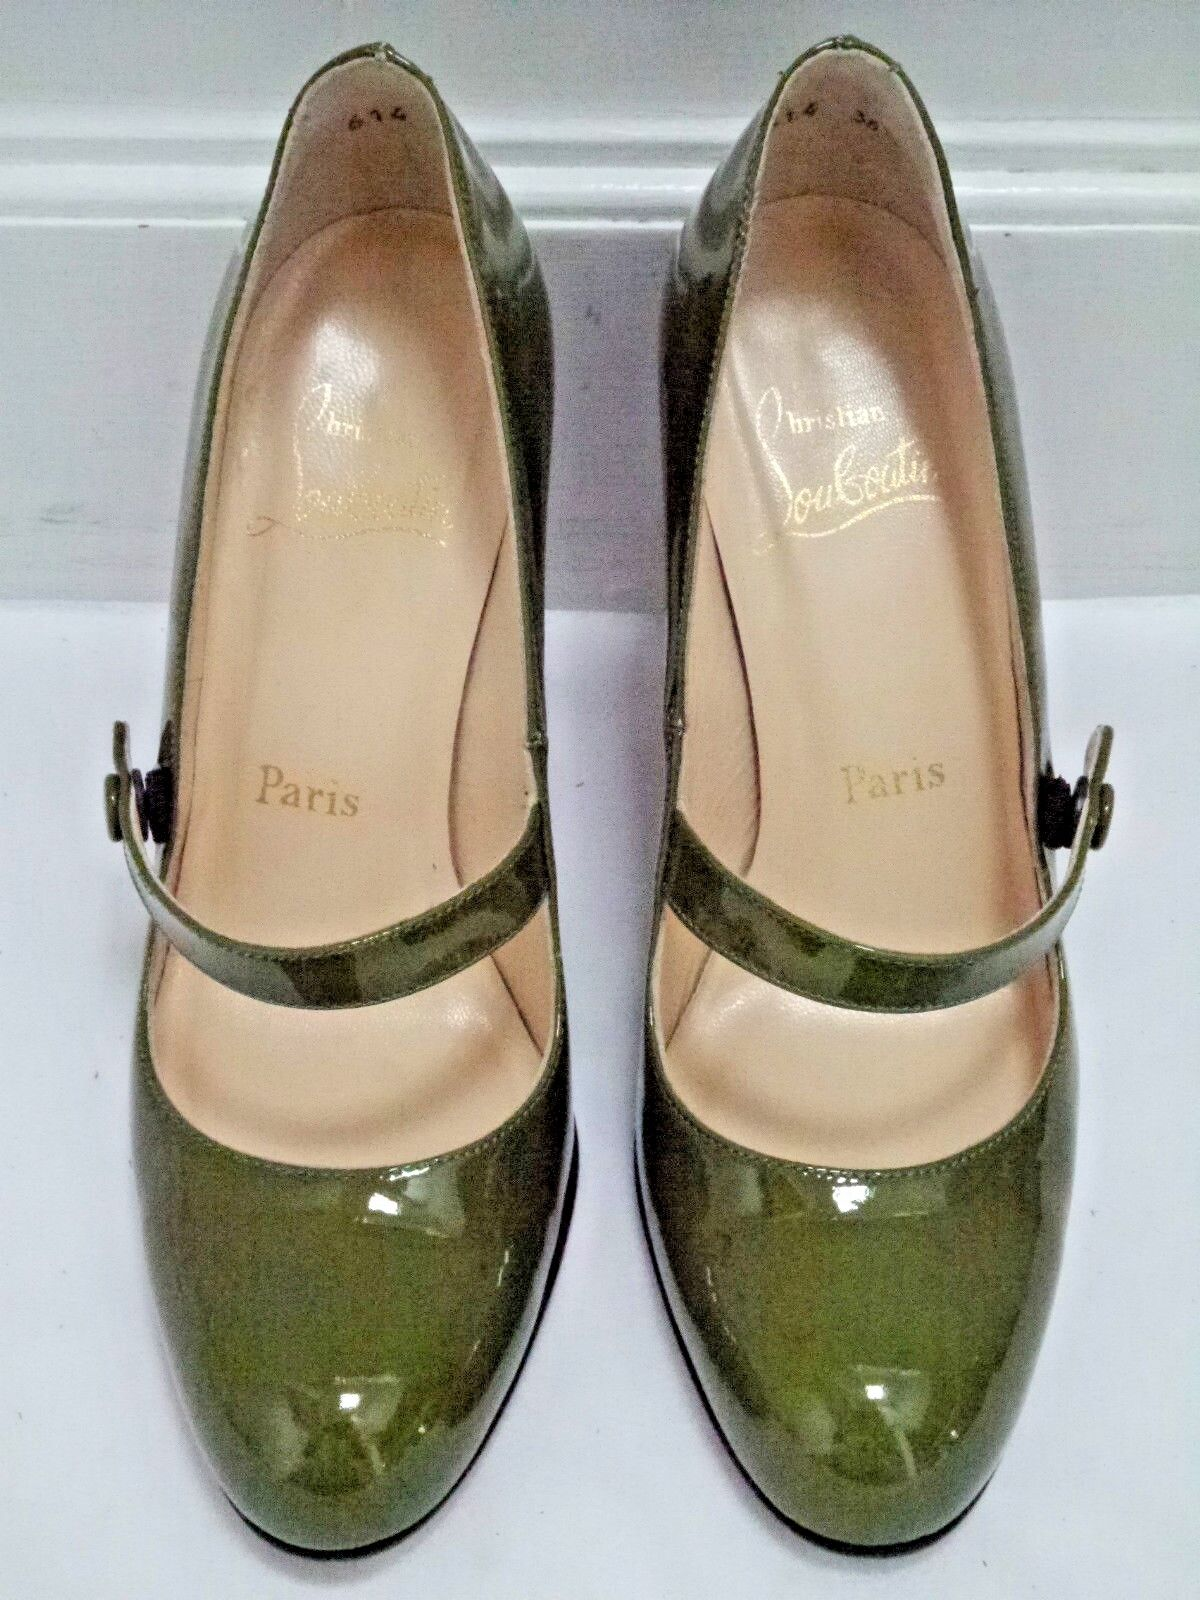 CHRISTIAN CHRISTIAN CHRISTIAN LOUBOUTIN army green patent leather Mary Jane heel pump 36.5 WORN ONCE 5afa8d